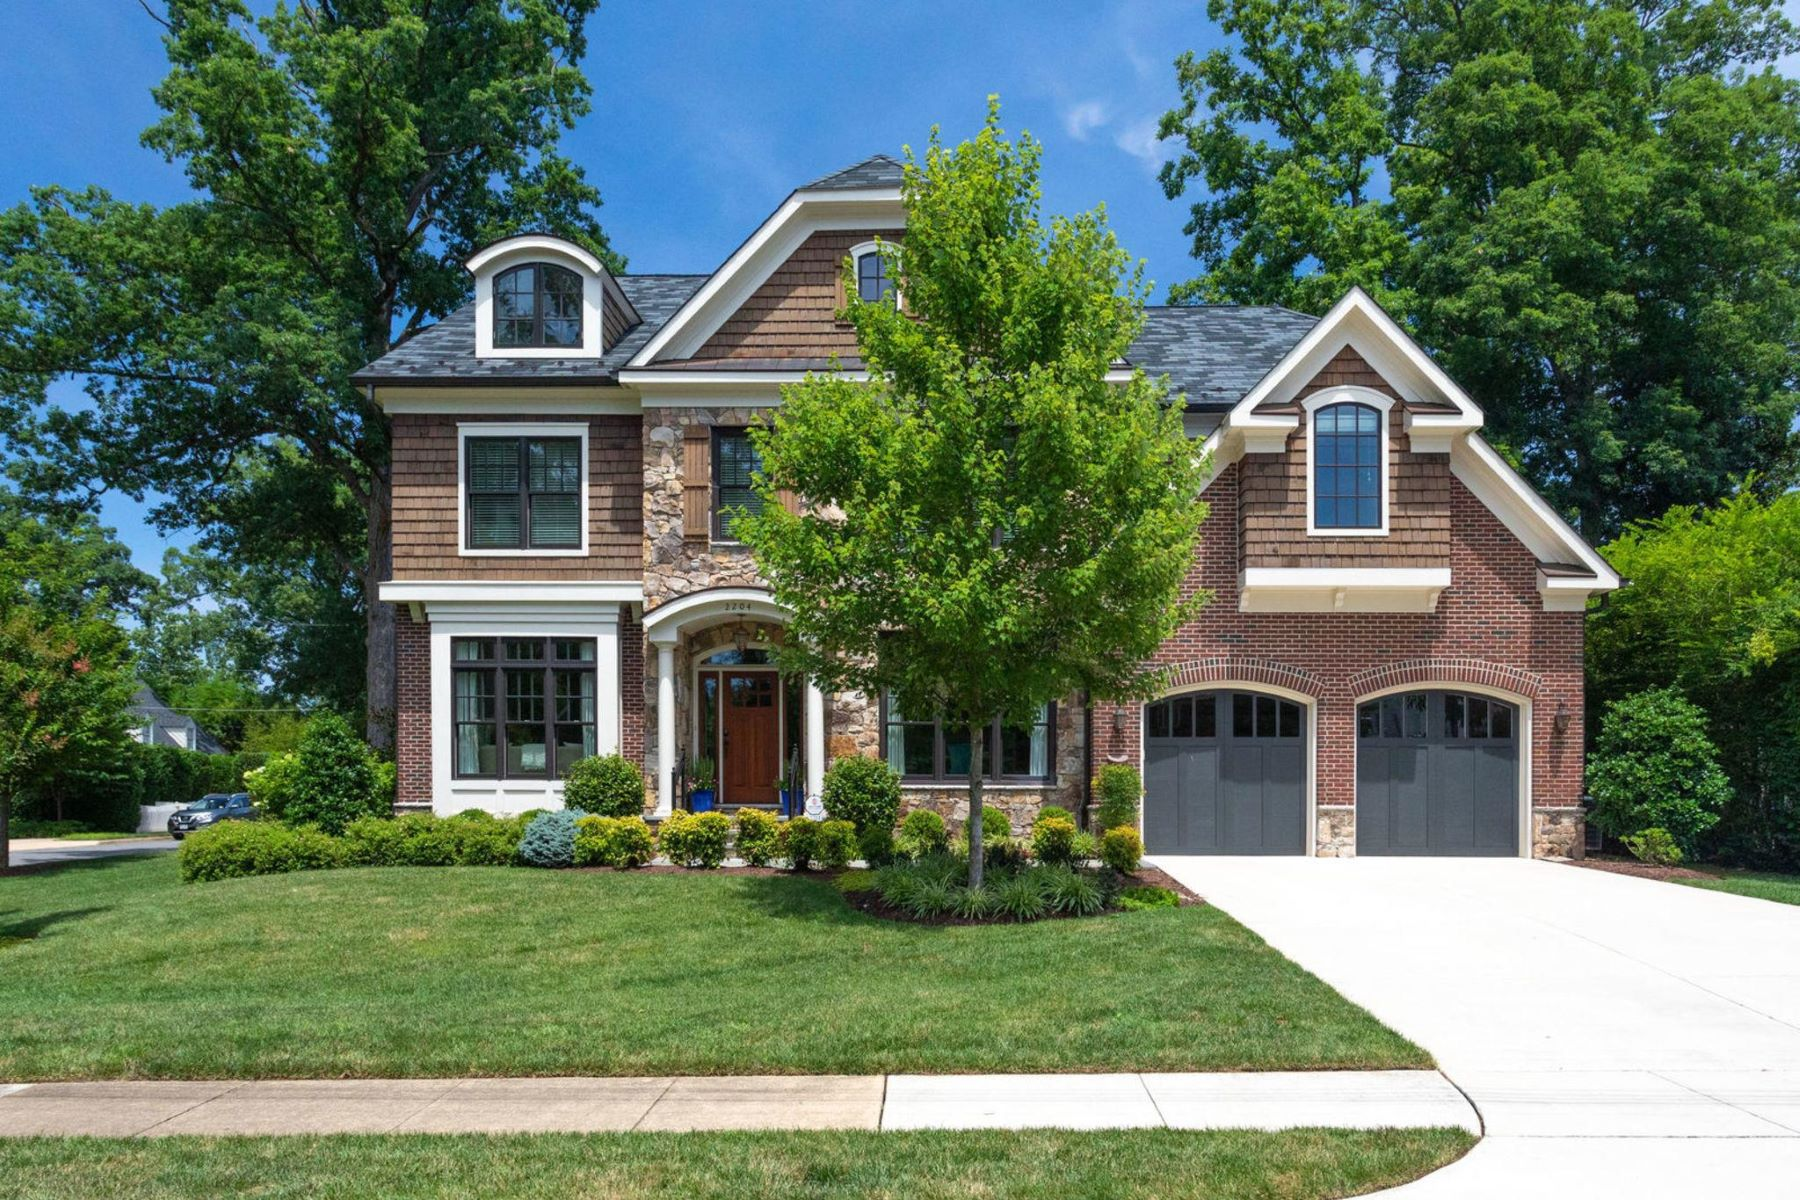 Single Family Homes for Active at 2204 Foresthill Rd Alexandria, Virginia 22307 United States